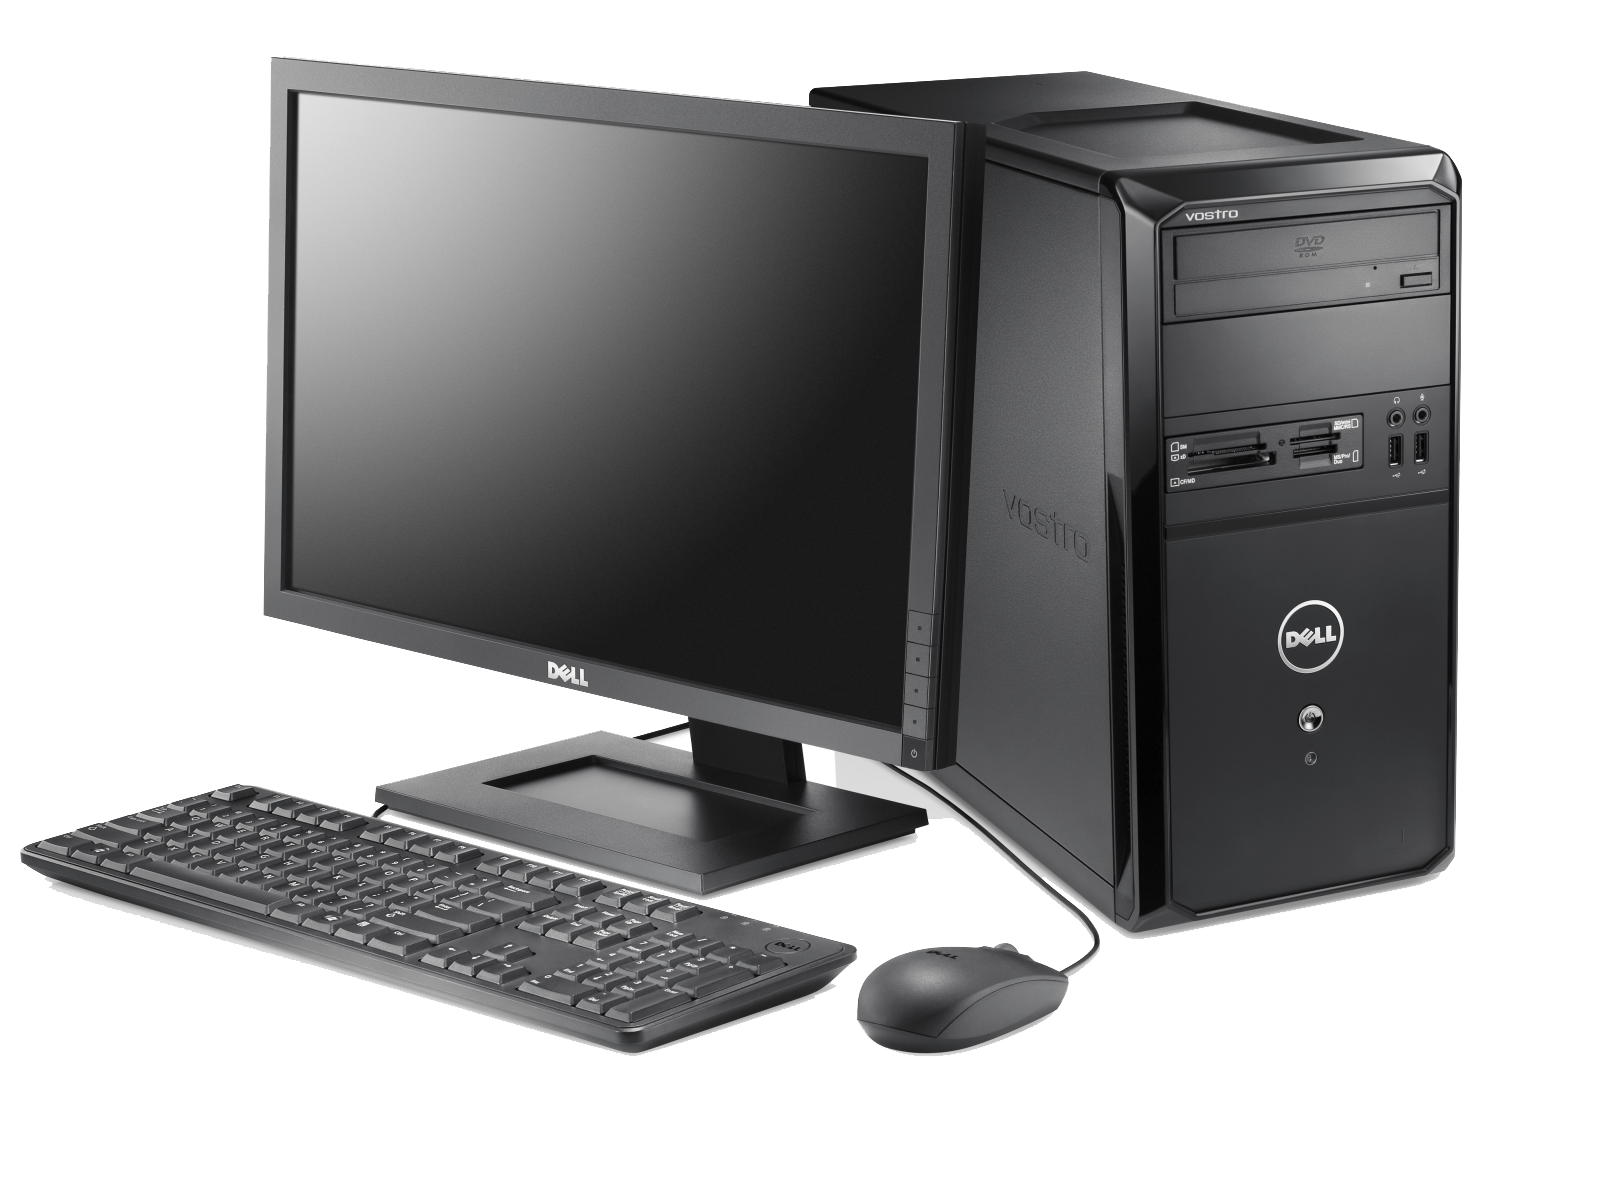 25 Desktop Computer PNG Transparent Images.